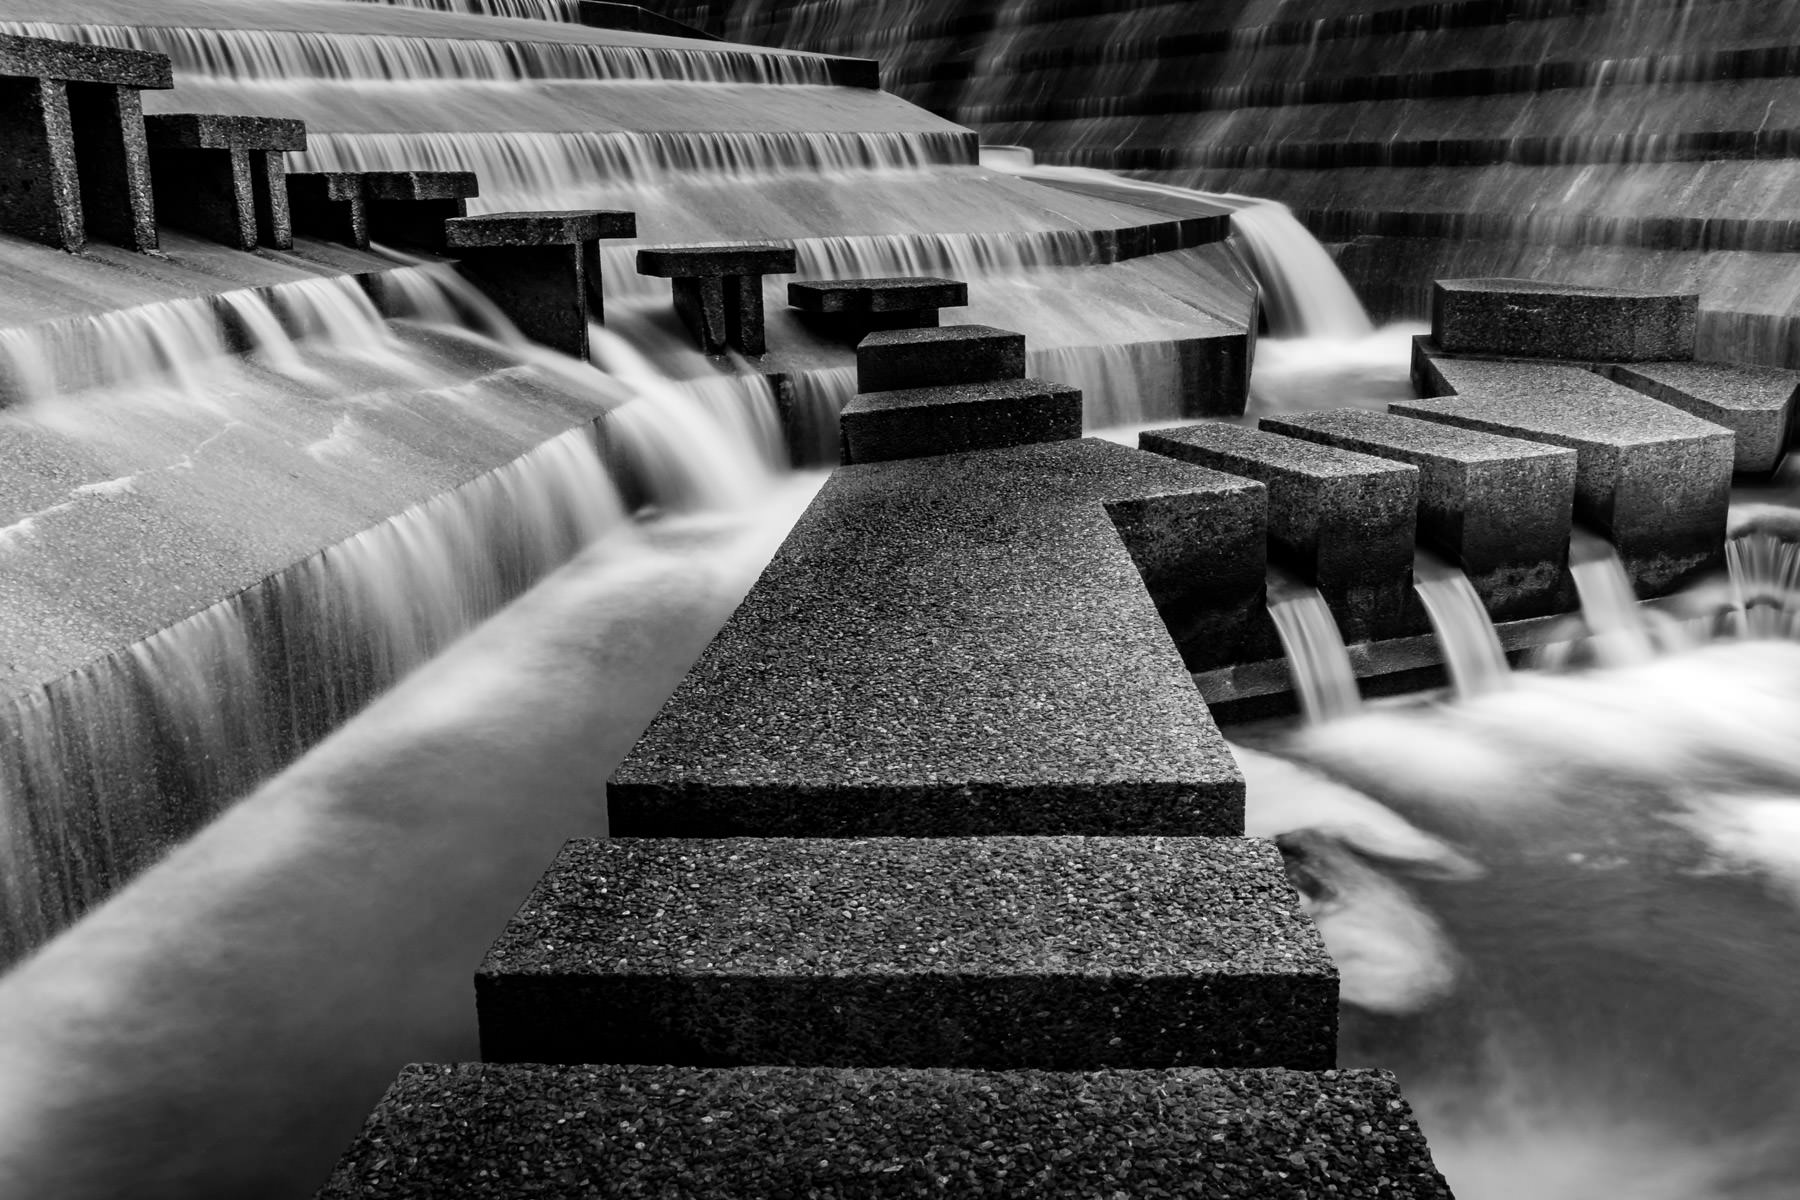 Concrete aggregate blocks form a path through the Active Pool at the Philip Johnson-designed Fort Worth Water Gardens in the south end of Downtown Fort Worth, Texas.